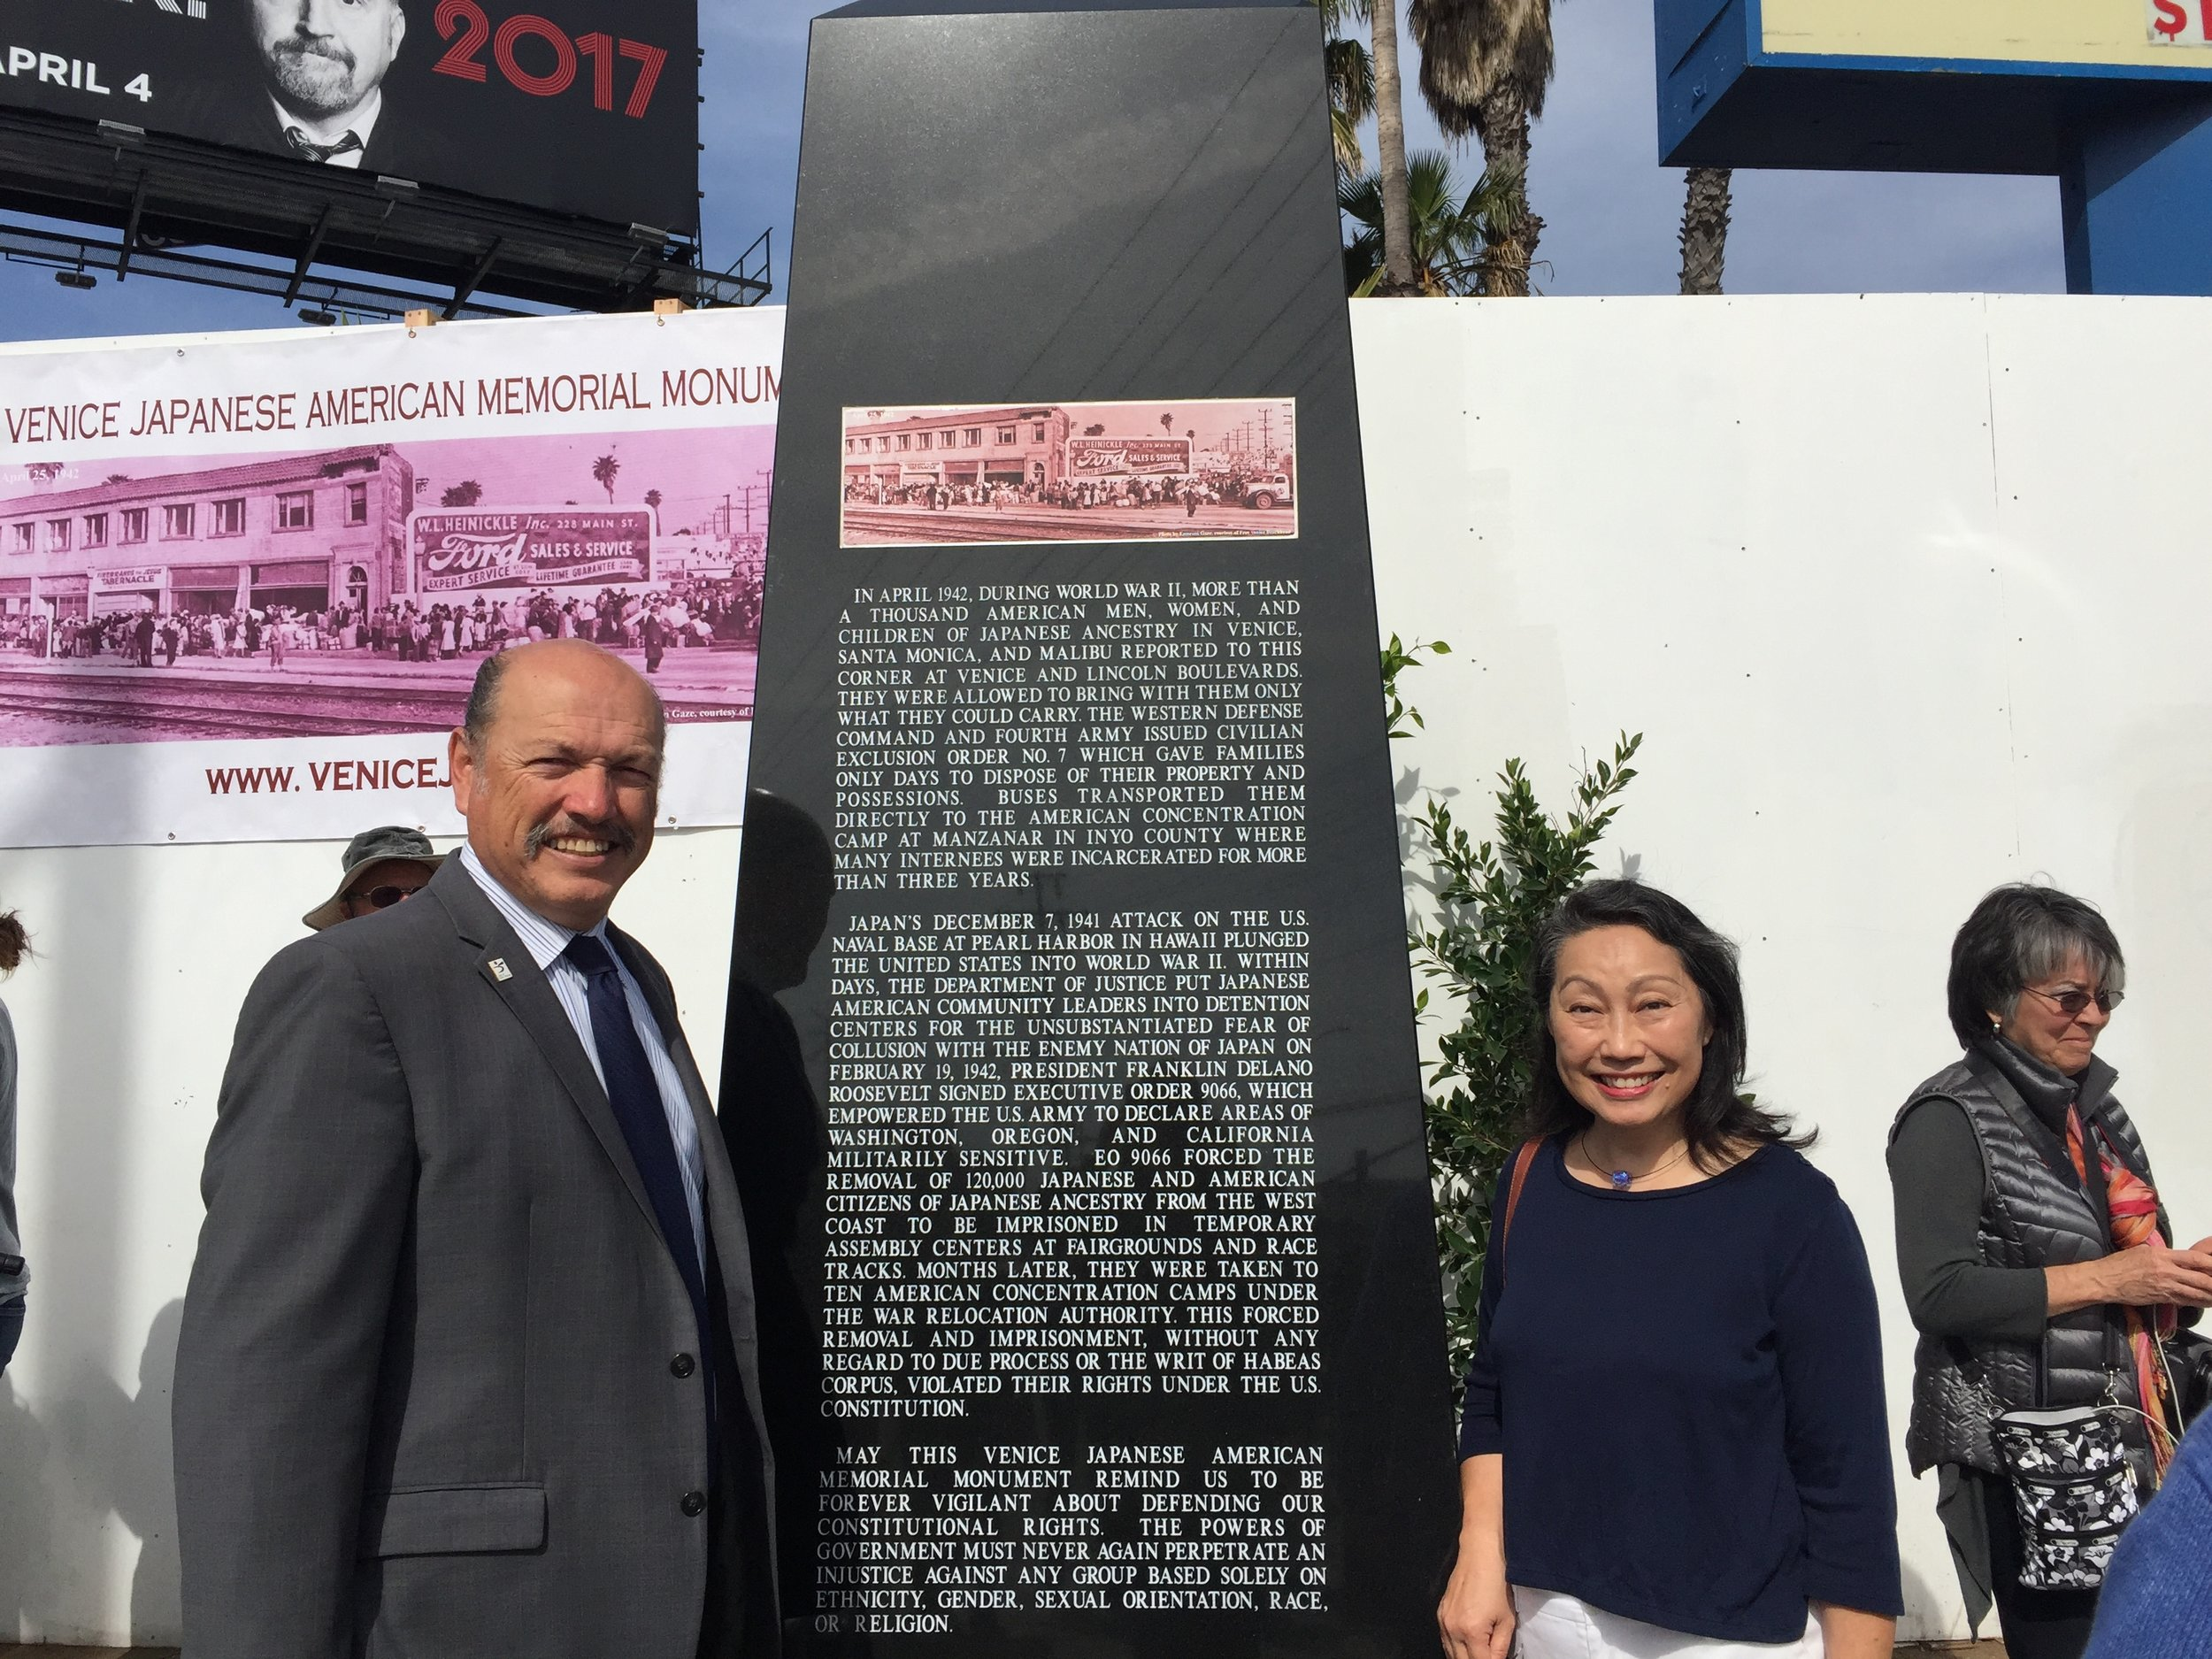 Tony at the dedication of the Japanese American Memorial in Venice, CA